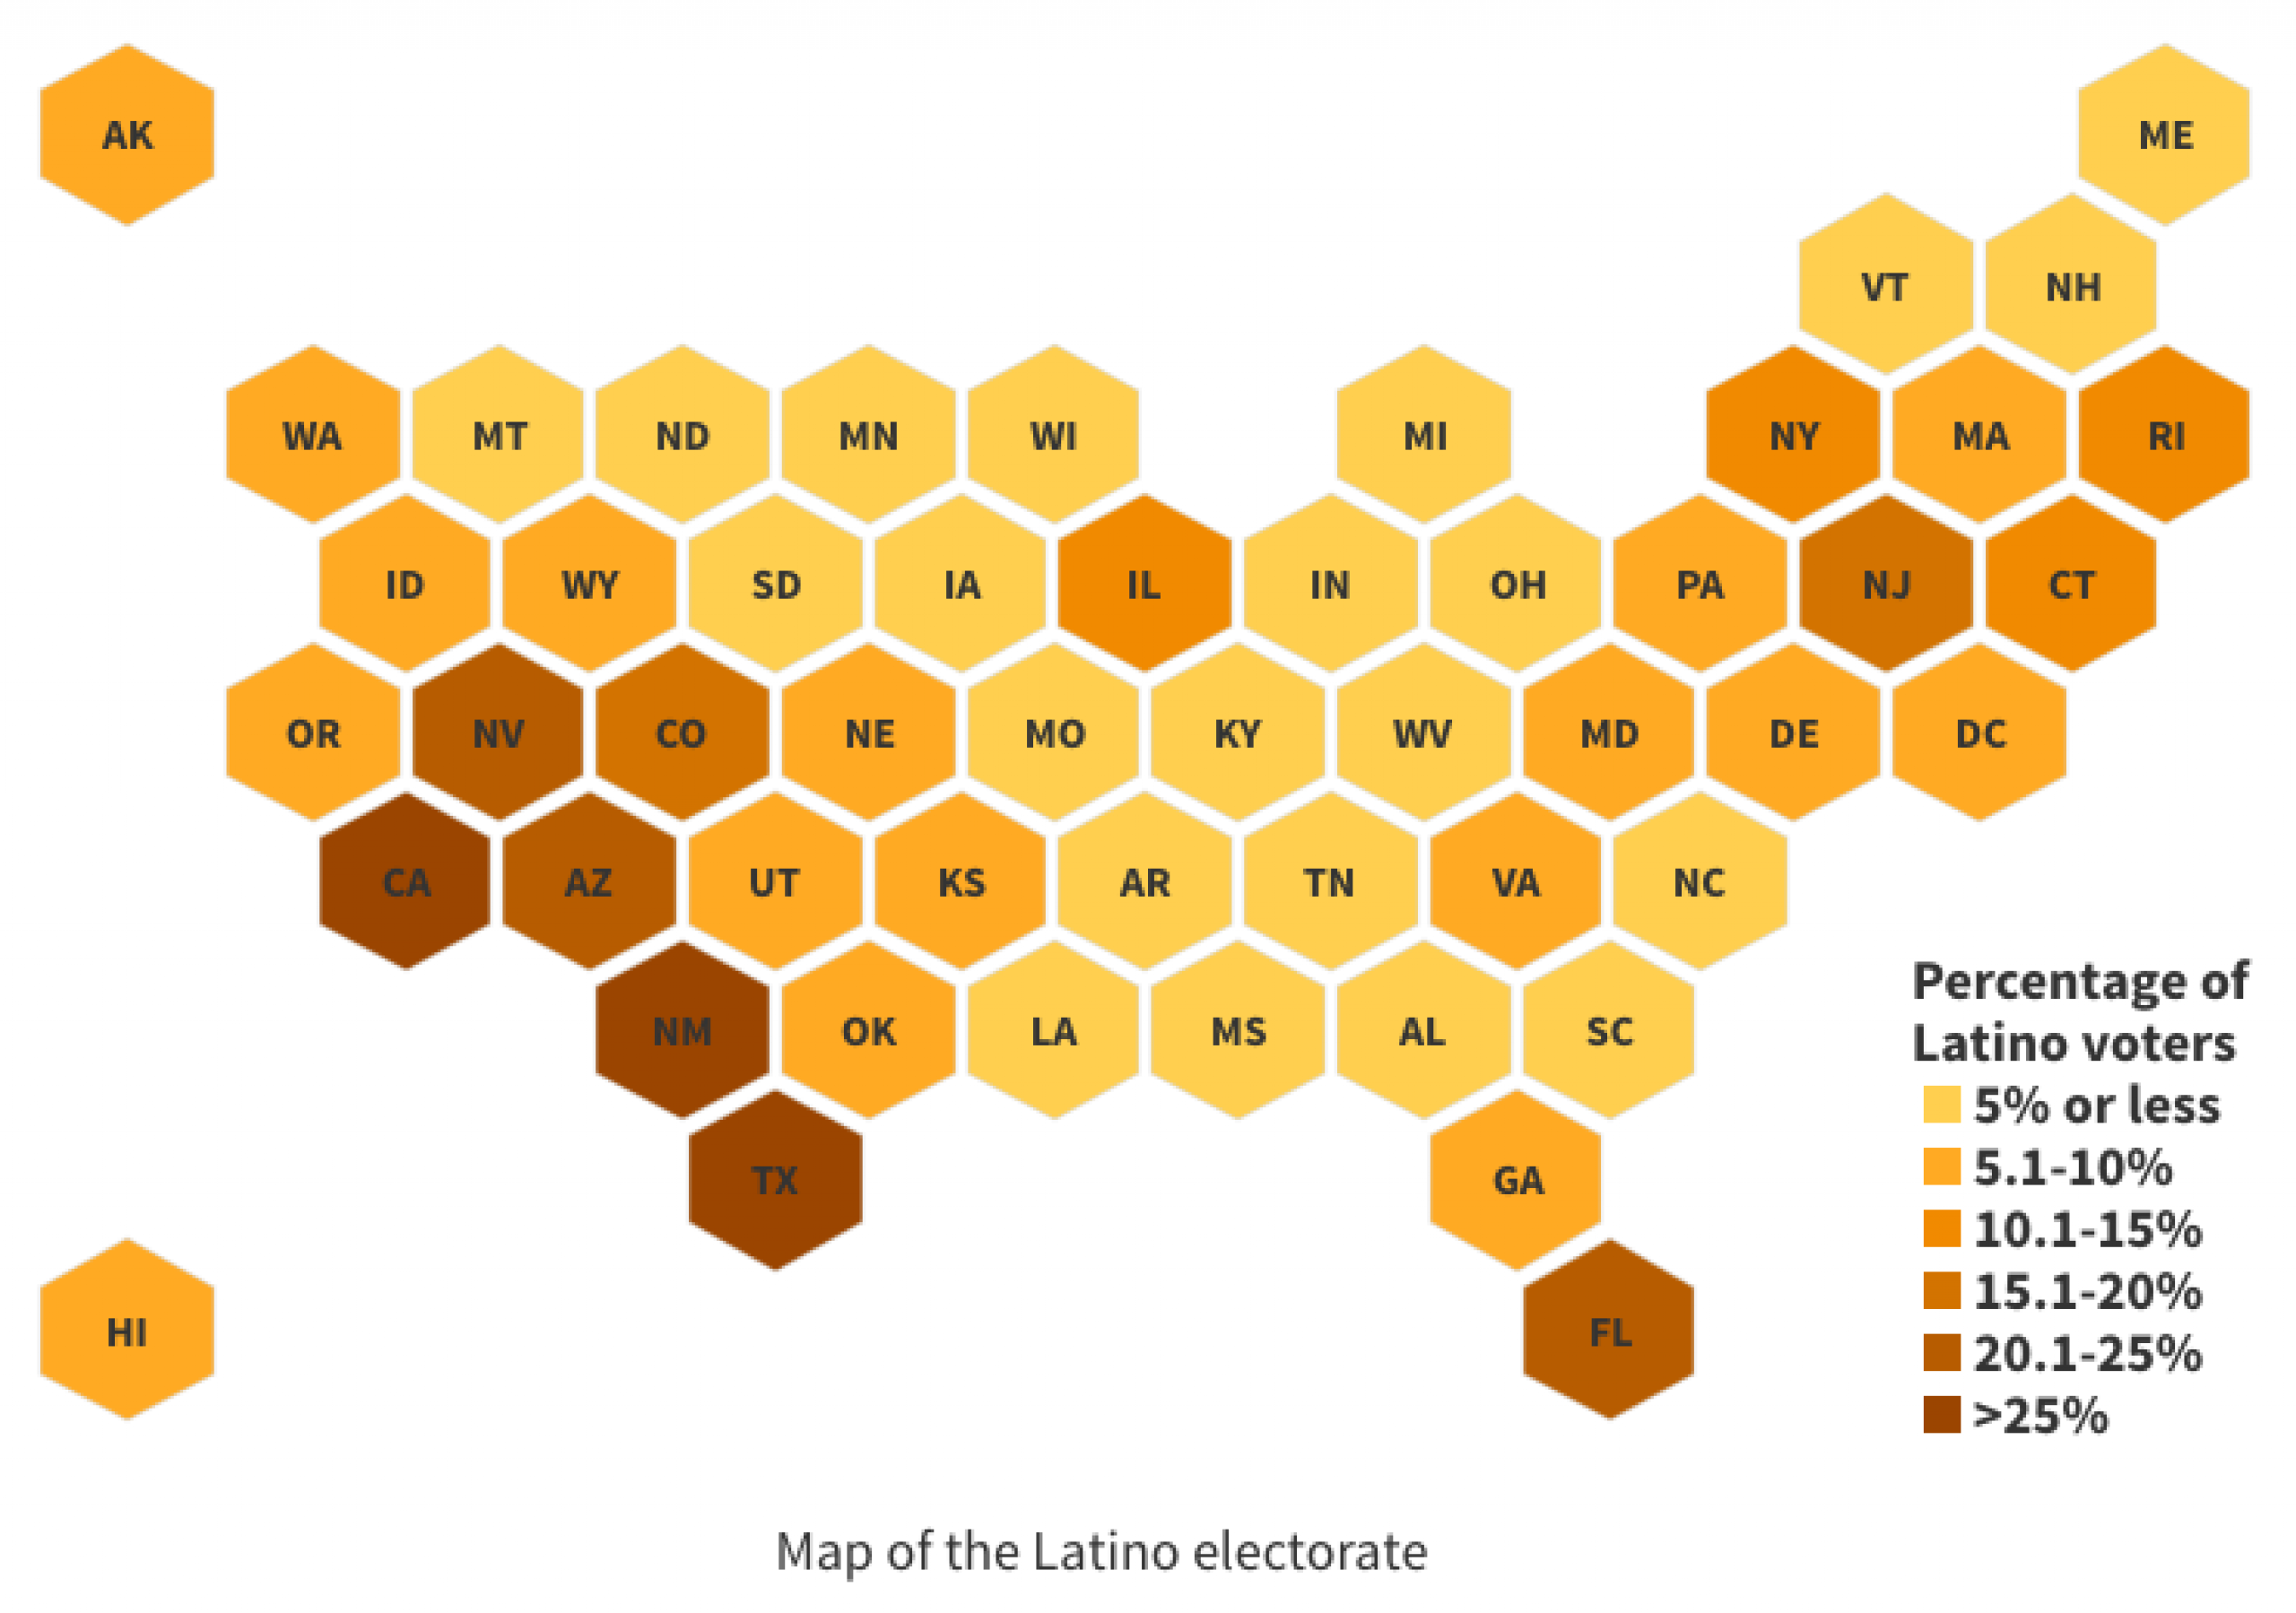 Percentage of Latino votes by state